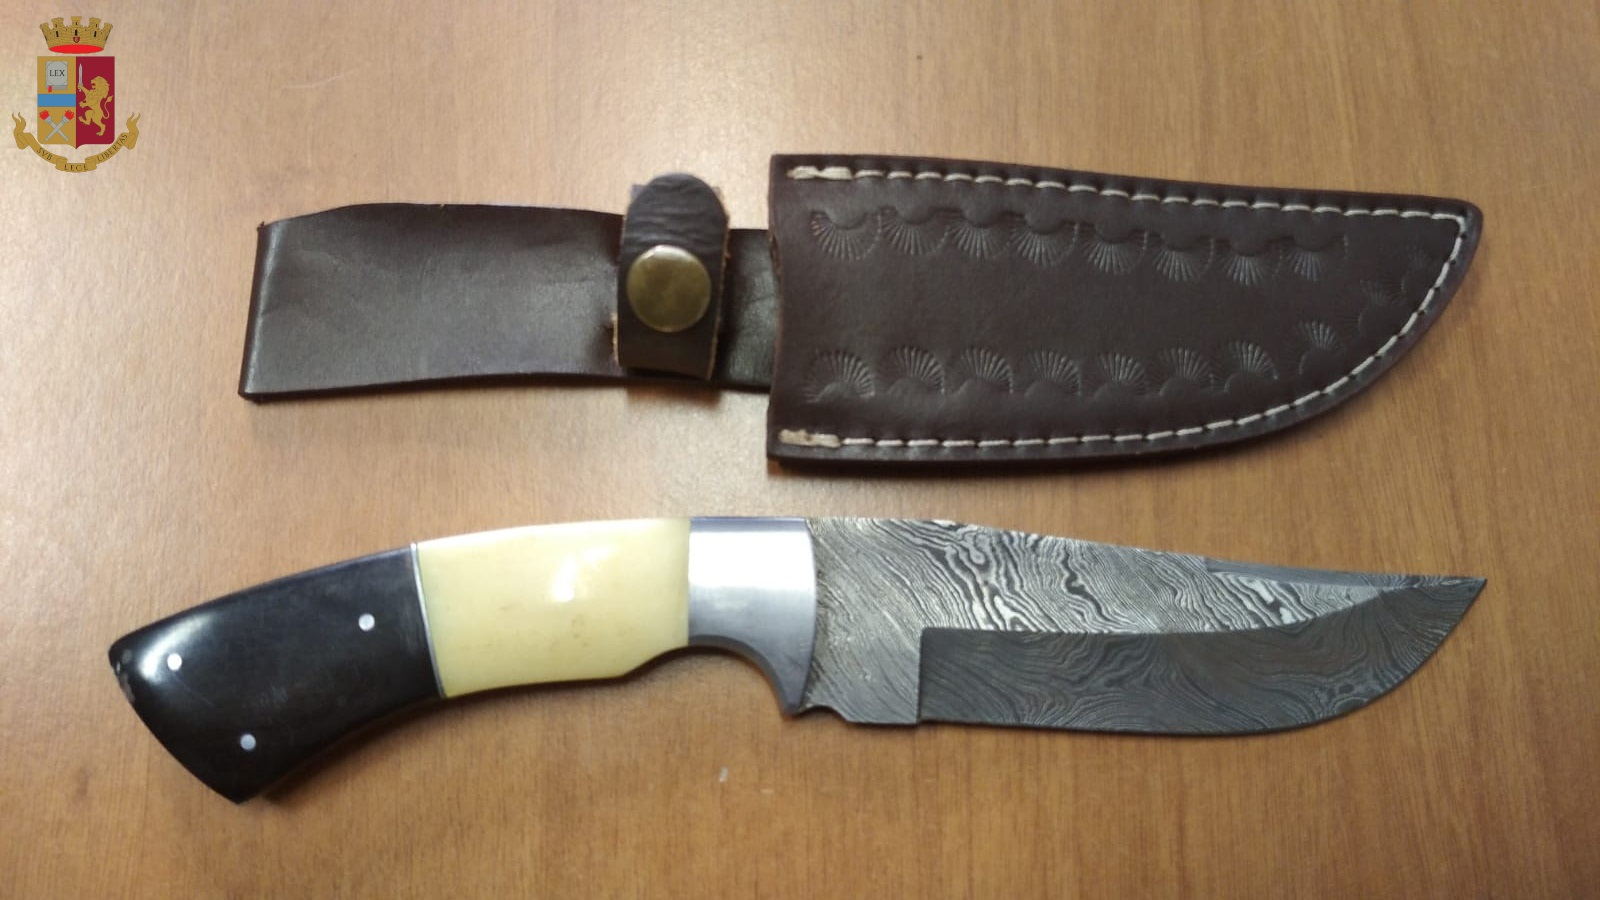 Coltello da Caccia sequestrato